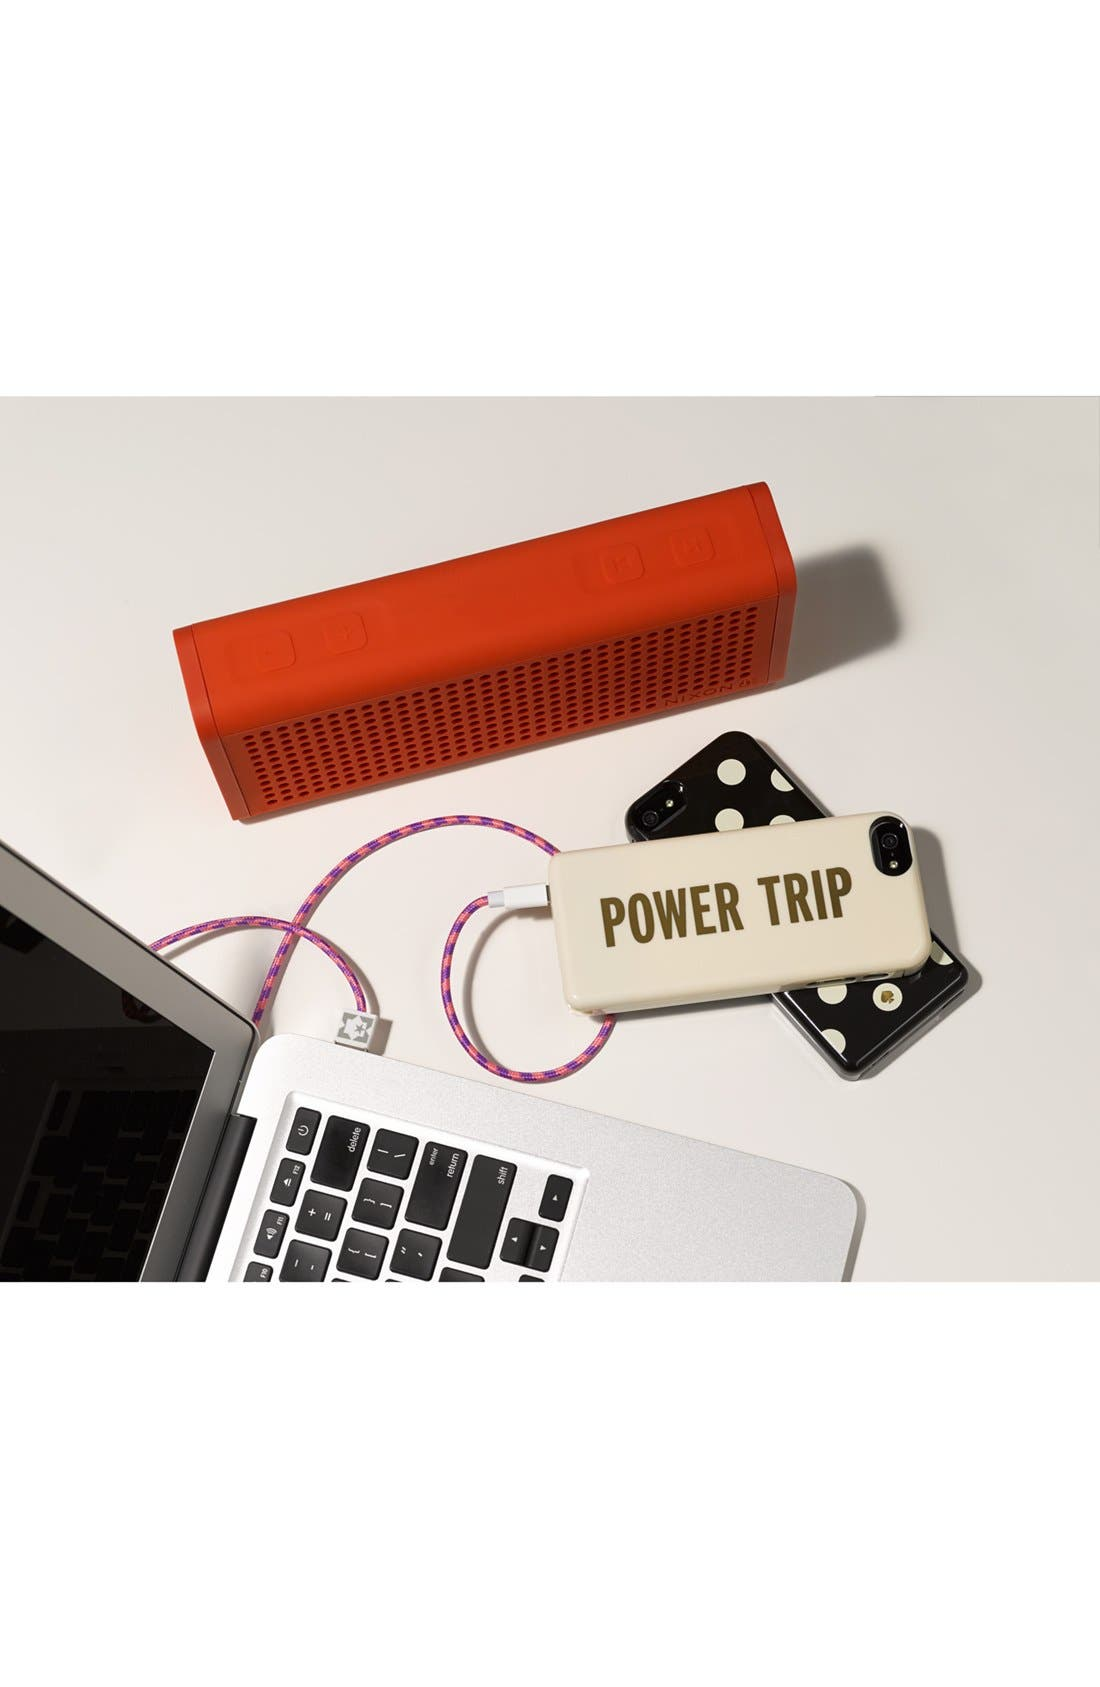 Alternate Image 2  - kate spade new york 'power trip' iPhone 5 case & portable charger